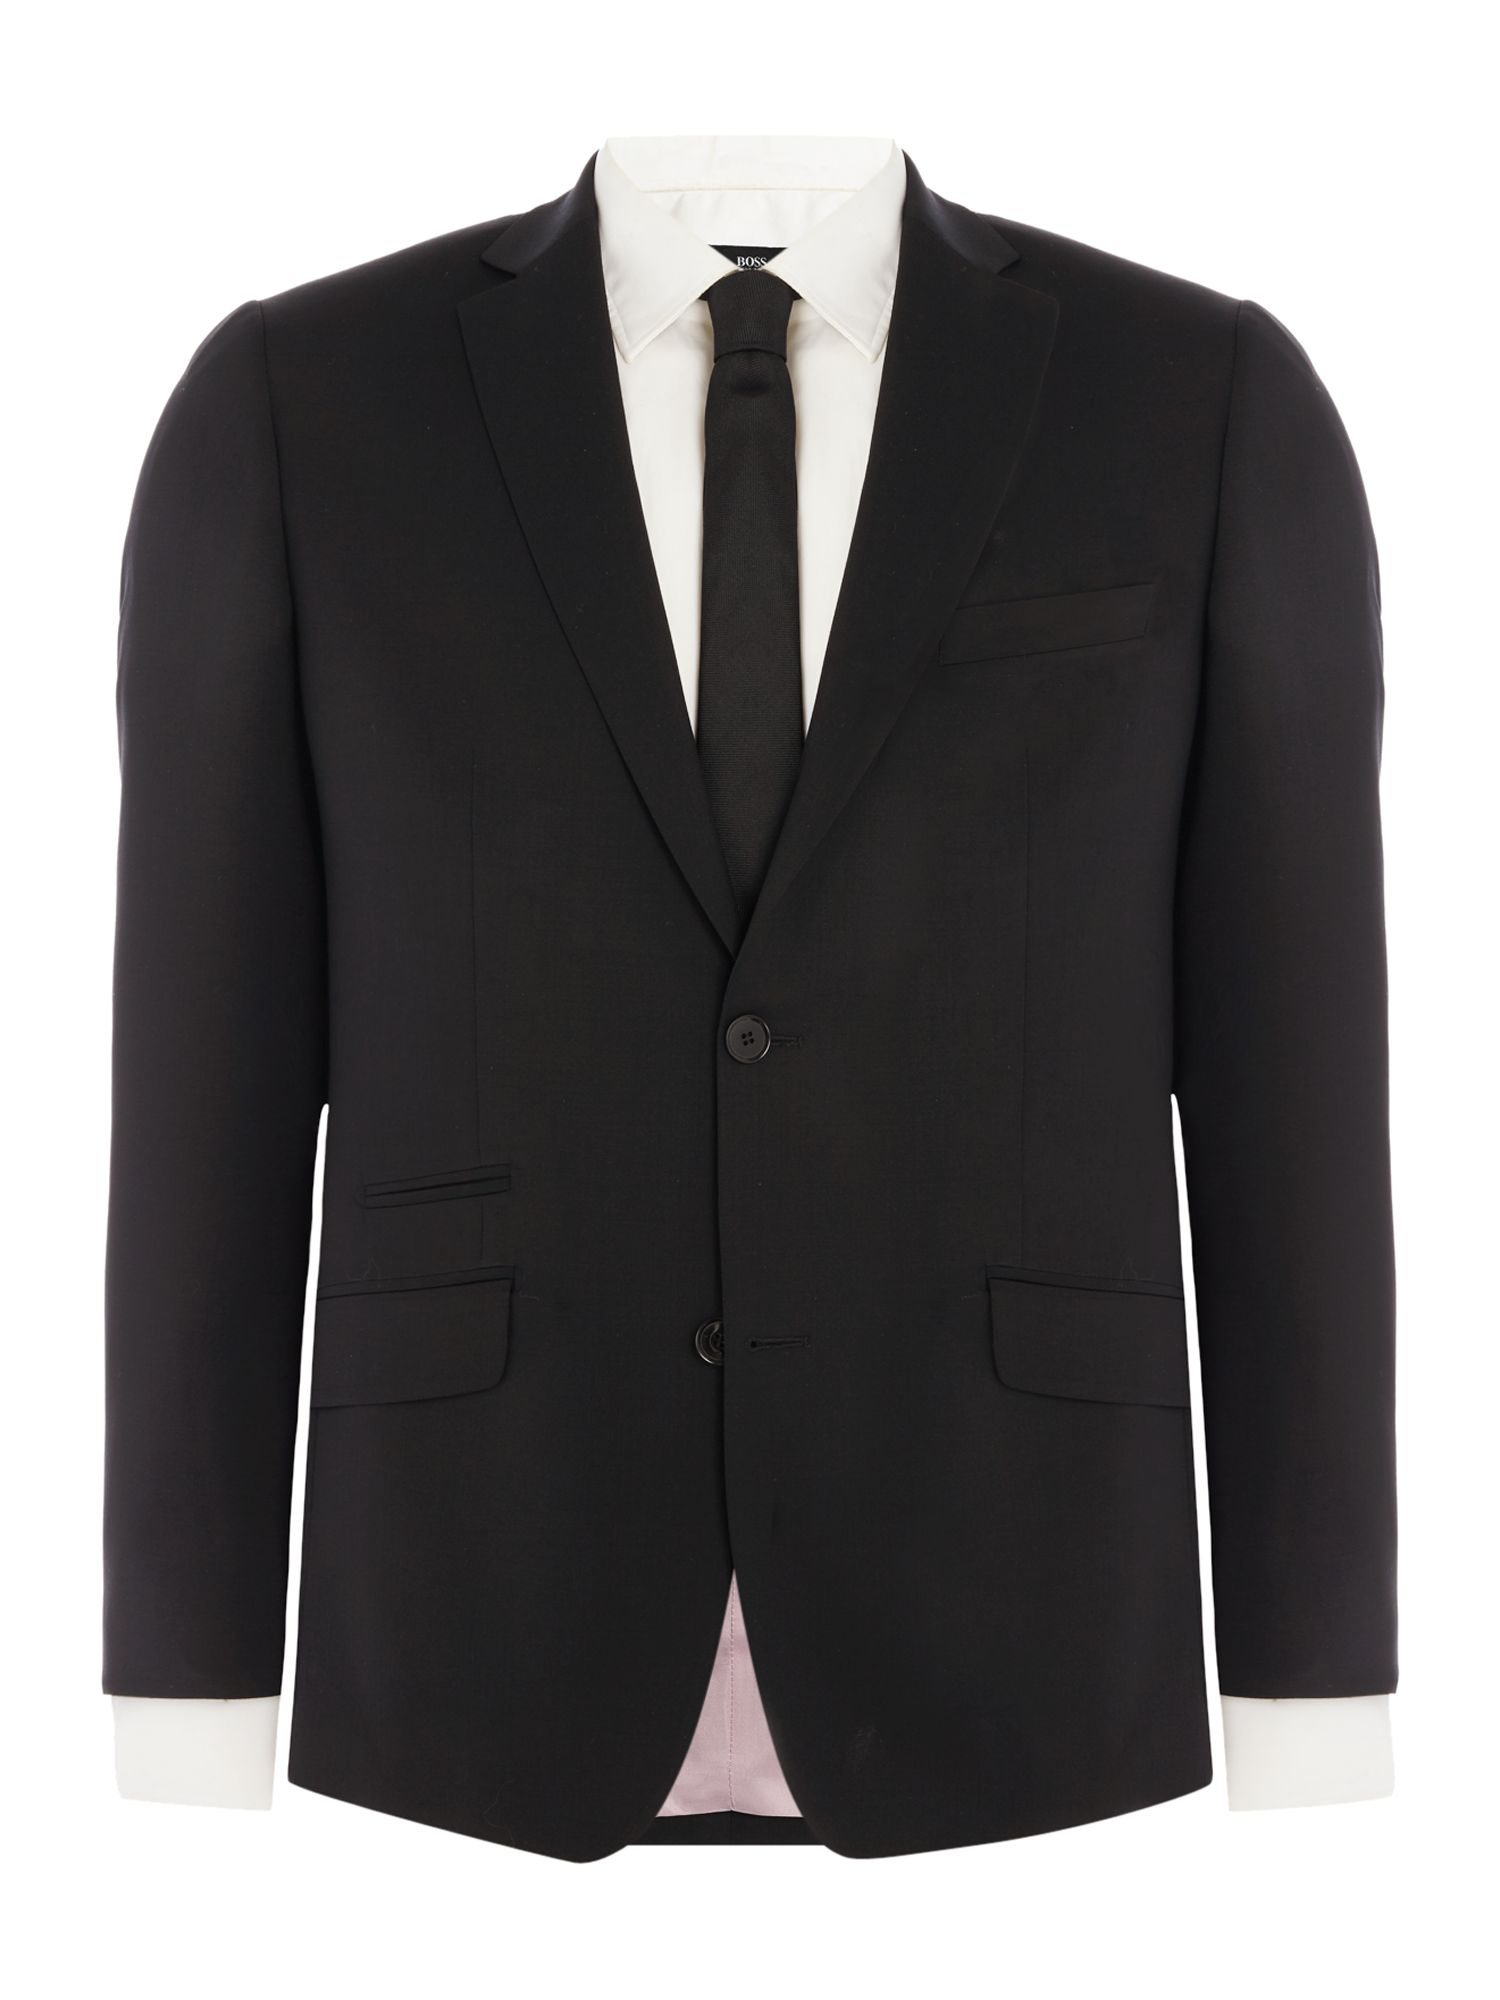 To kick off any guide of best cheap suits, we always have to begin with the classic. Timeless and versatile between formal events, the black suit is an essential for your wardrobe. Widely available in slim, skinny and regular fits, you're are not restricted to finding your perfect suit.